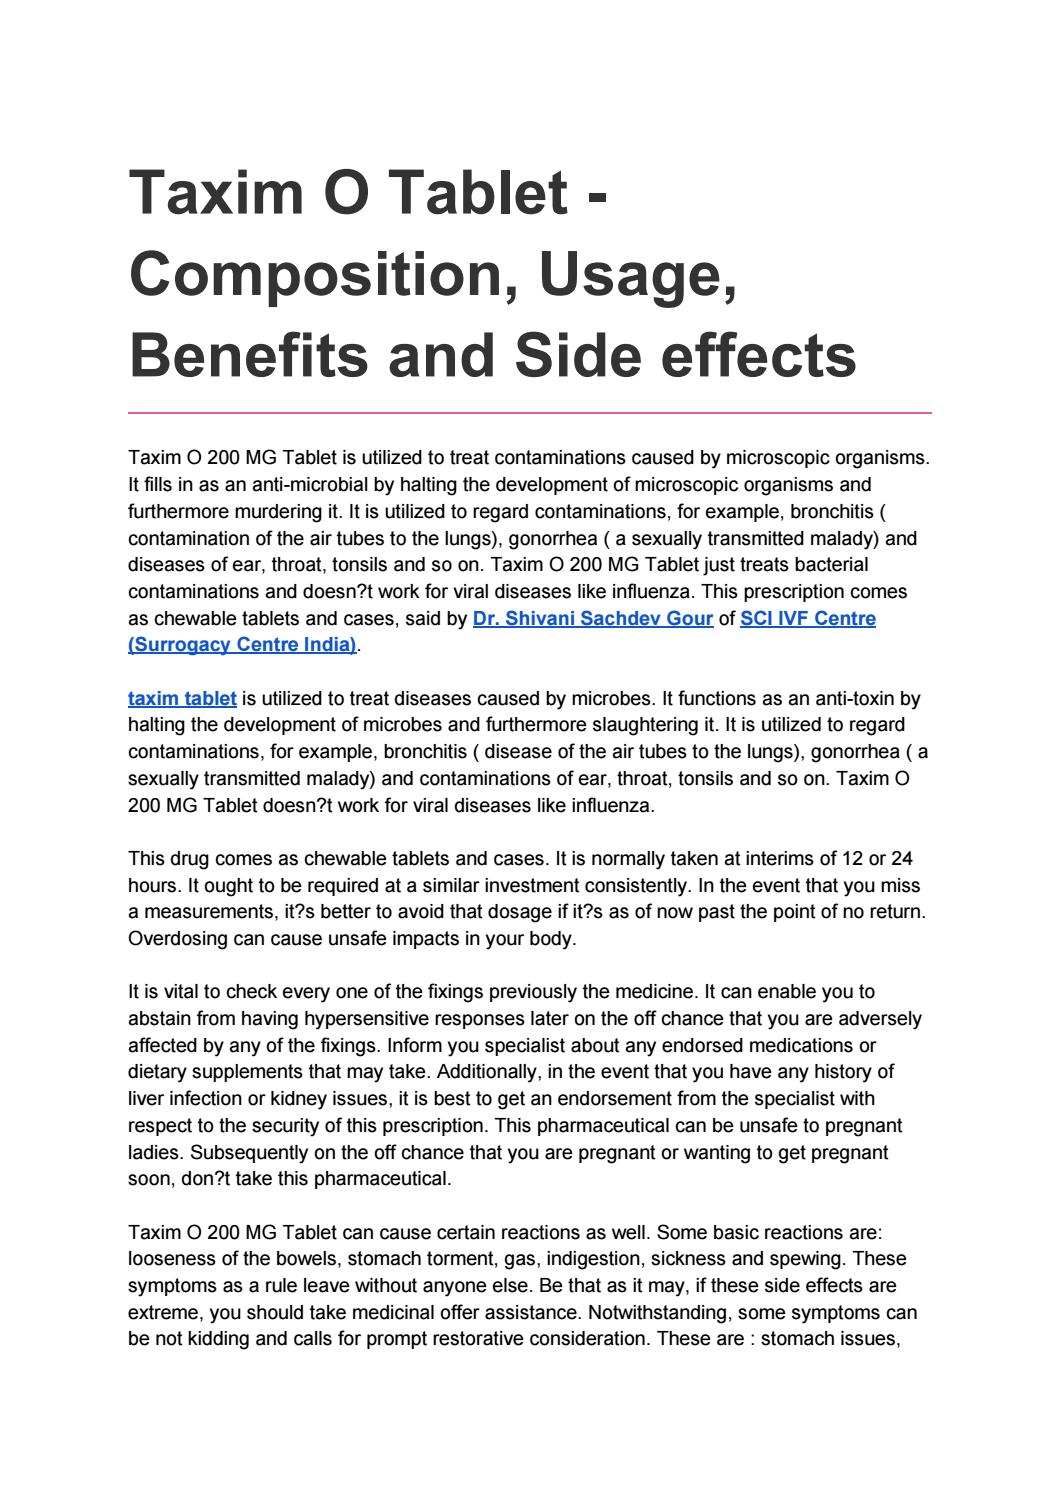 Magnificent Taxim O Tablet Usage Benefits And Side Effects By Yon Fra Home Remodeling Inspirations Genioncuboardxyz